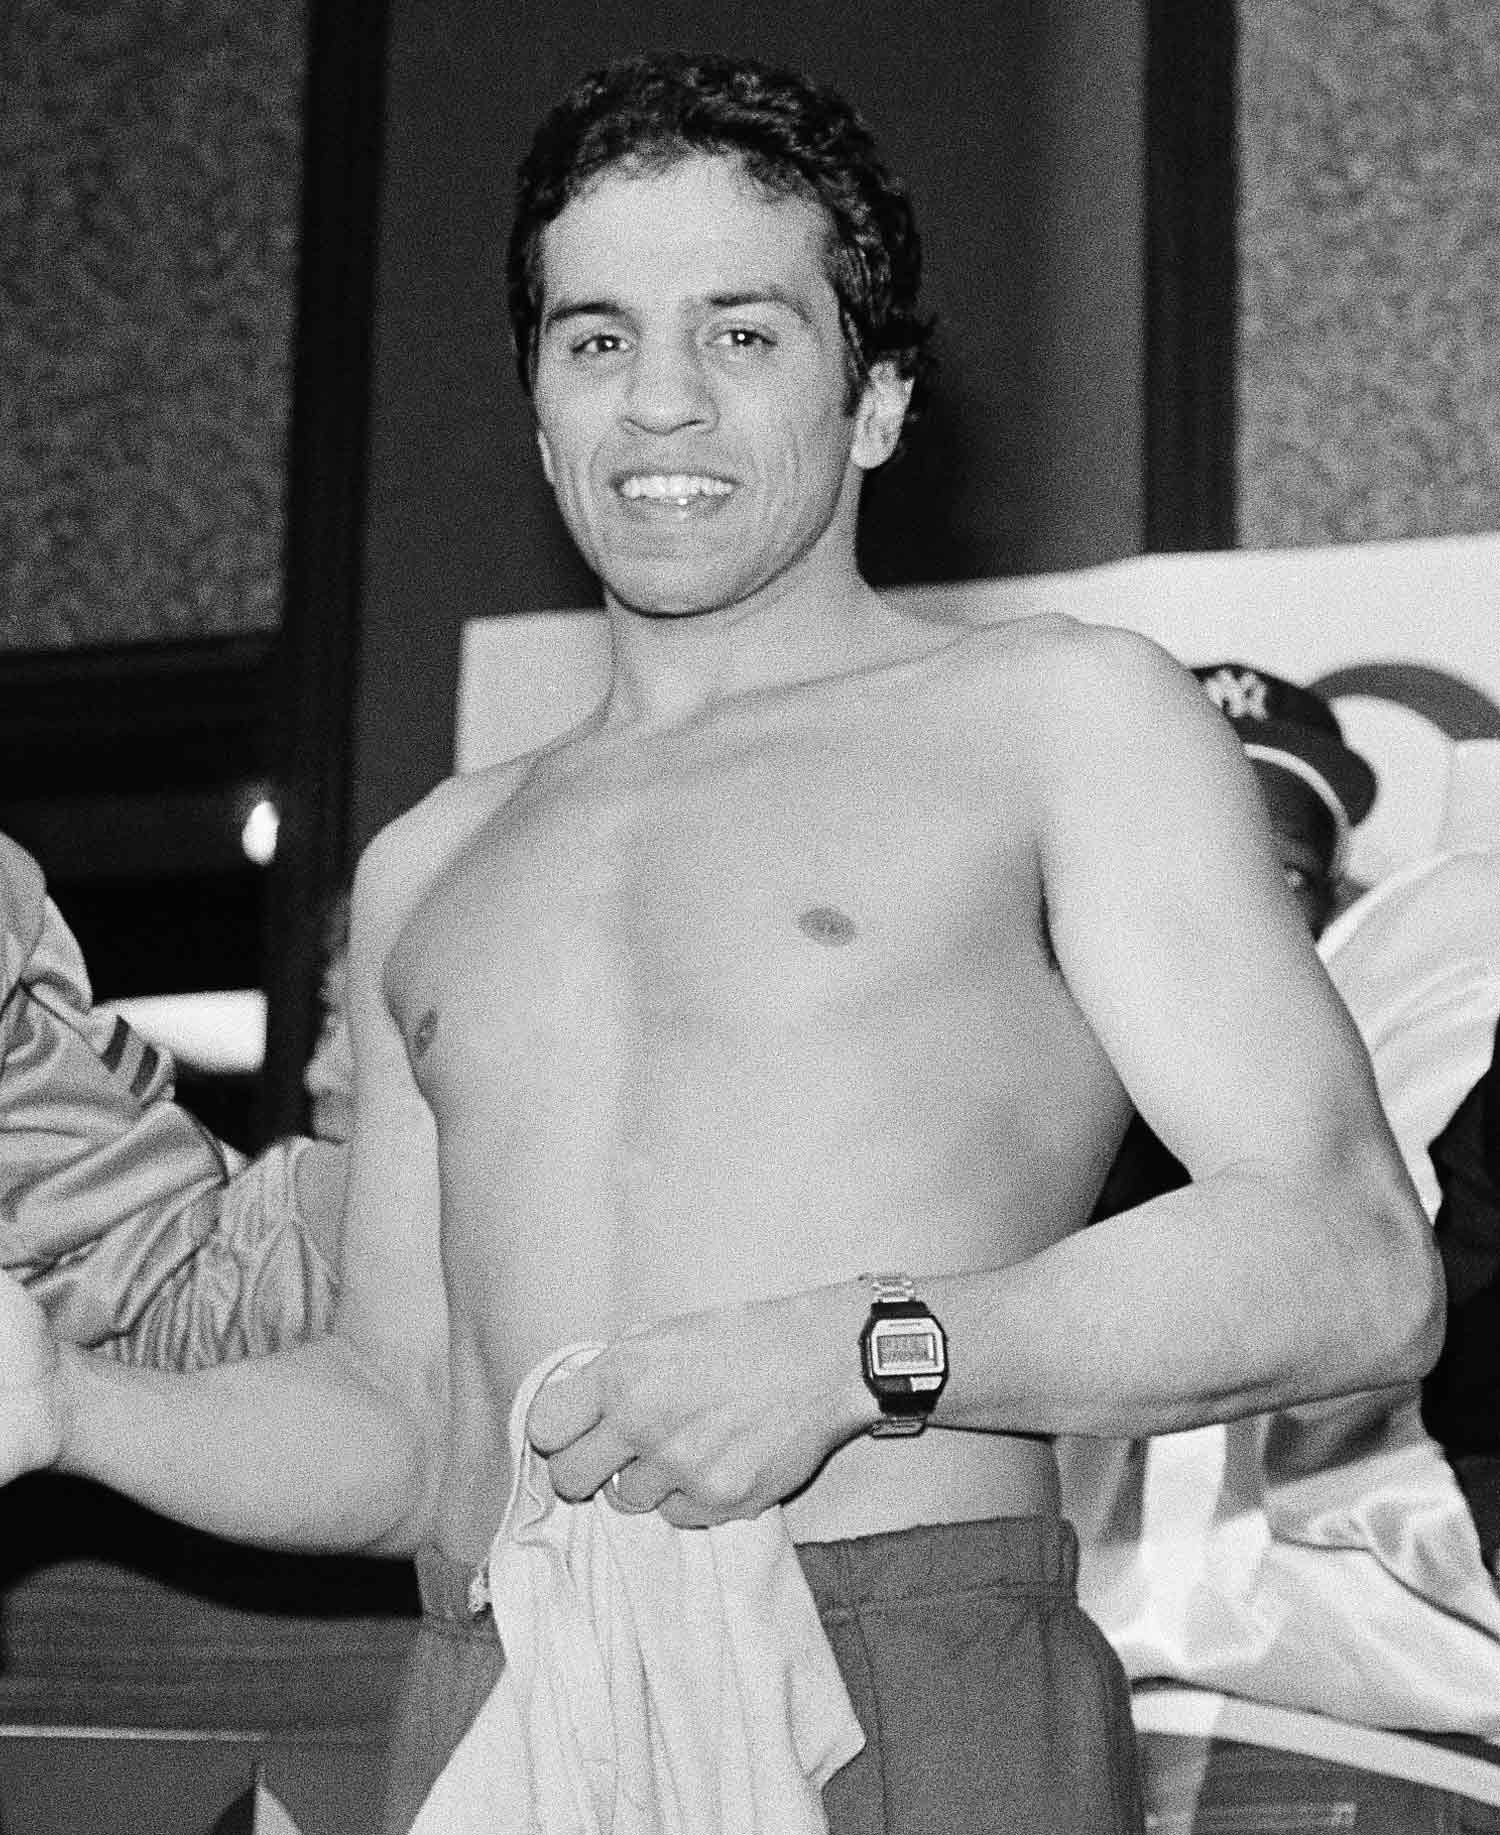 <div class='meta'><div class='origin-logo' data-origin='AP'></div><span class='caption-text' data-credit='AP Photo/Walt Zeboski'>Bobby Chacon, an International Boxing Hall of Famer and featherweight champion, died on Sept. 7, 2016. He was 64.</span></div>